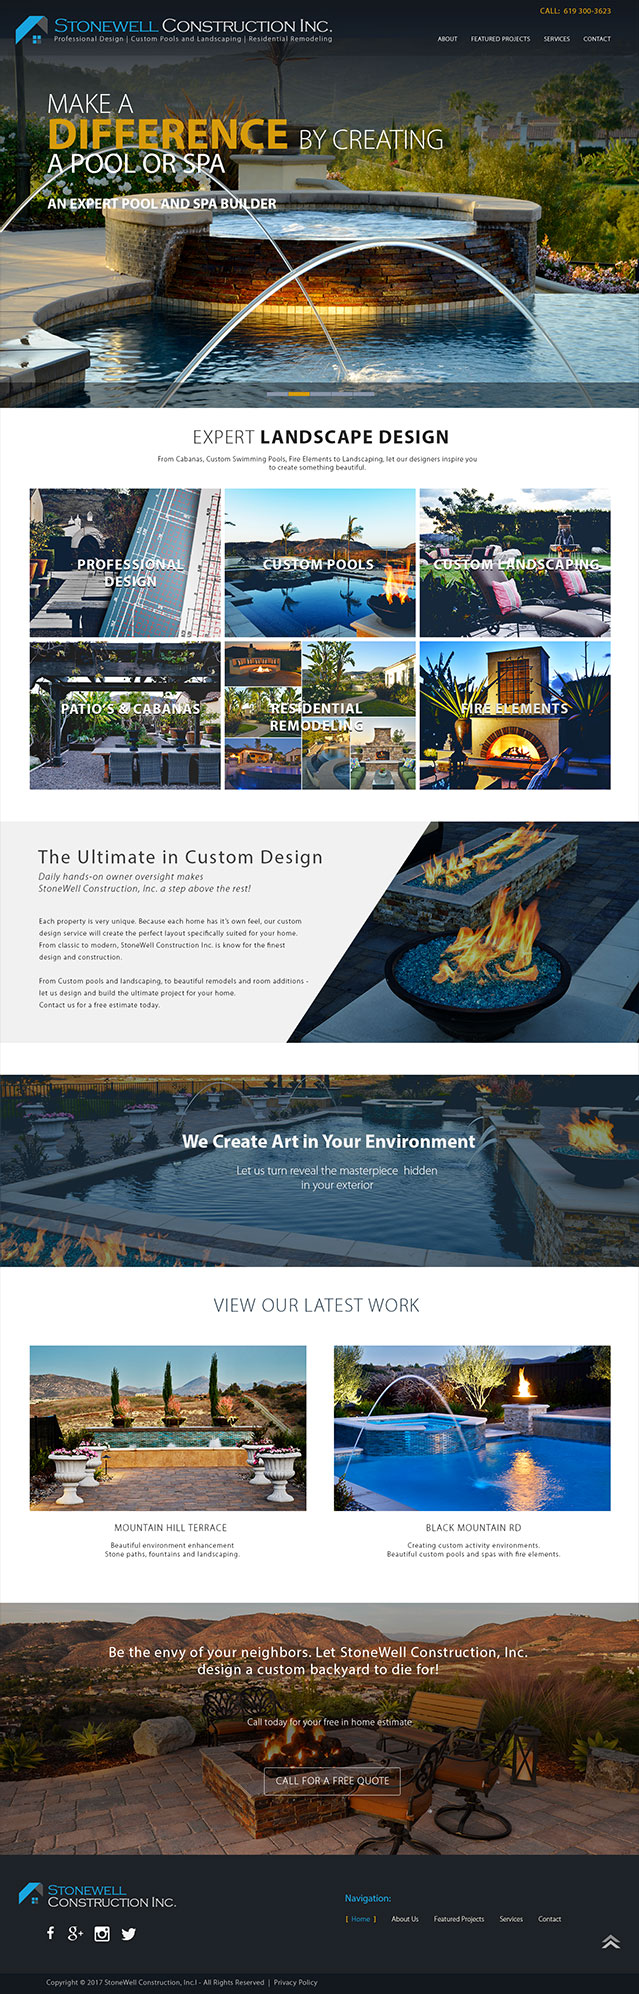 surus builds Stonewell construction's home page